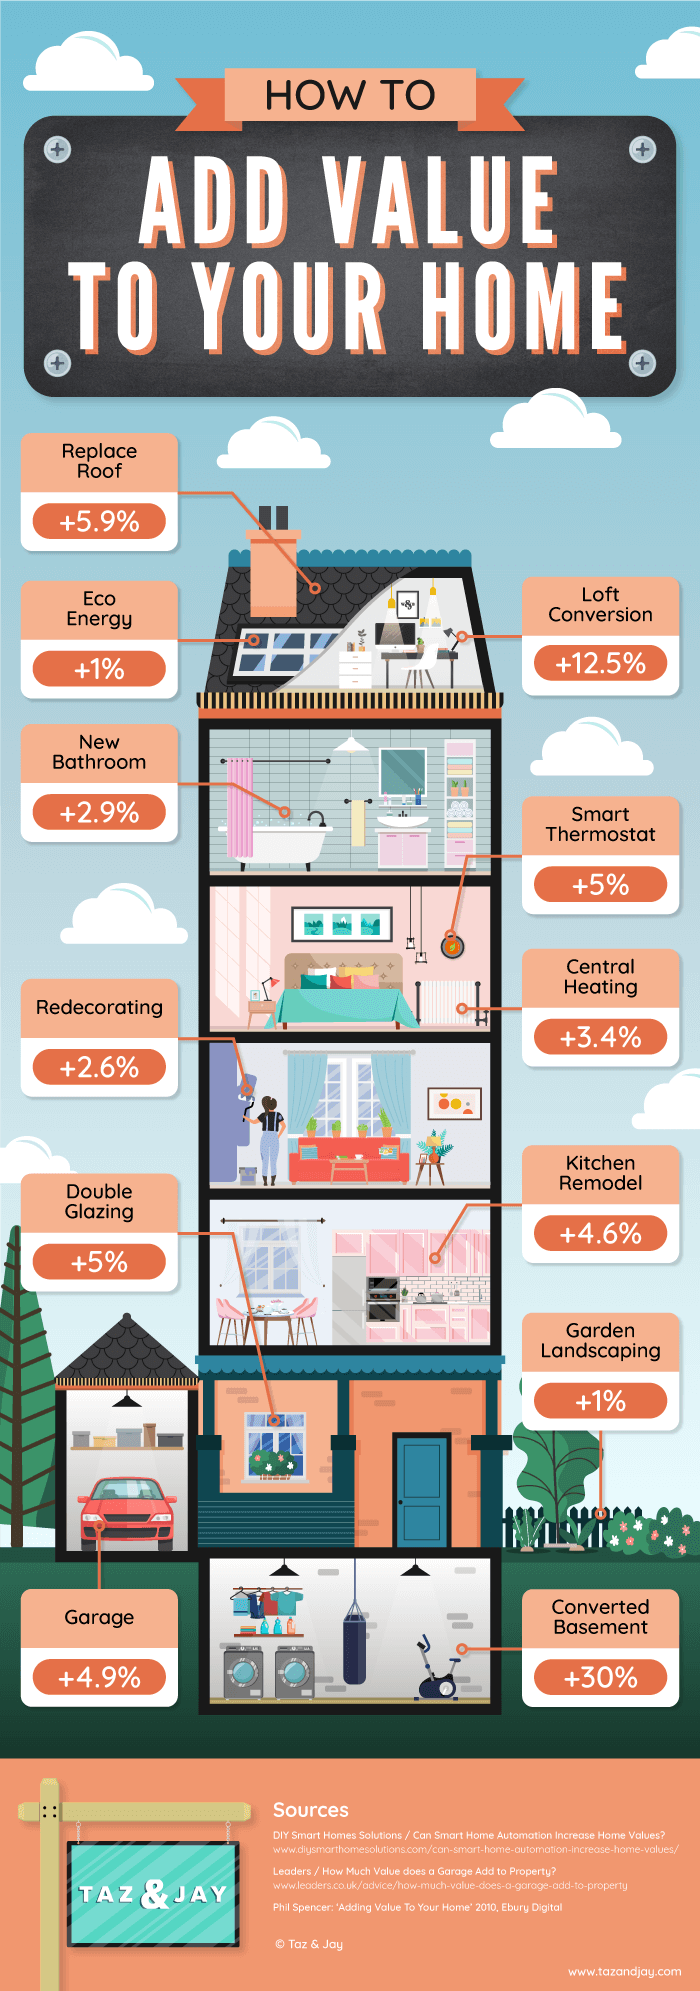 how to add value to your home taz and jay infographic